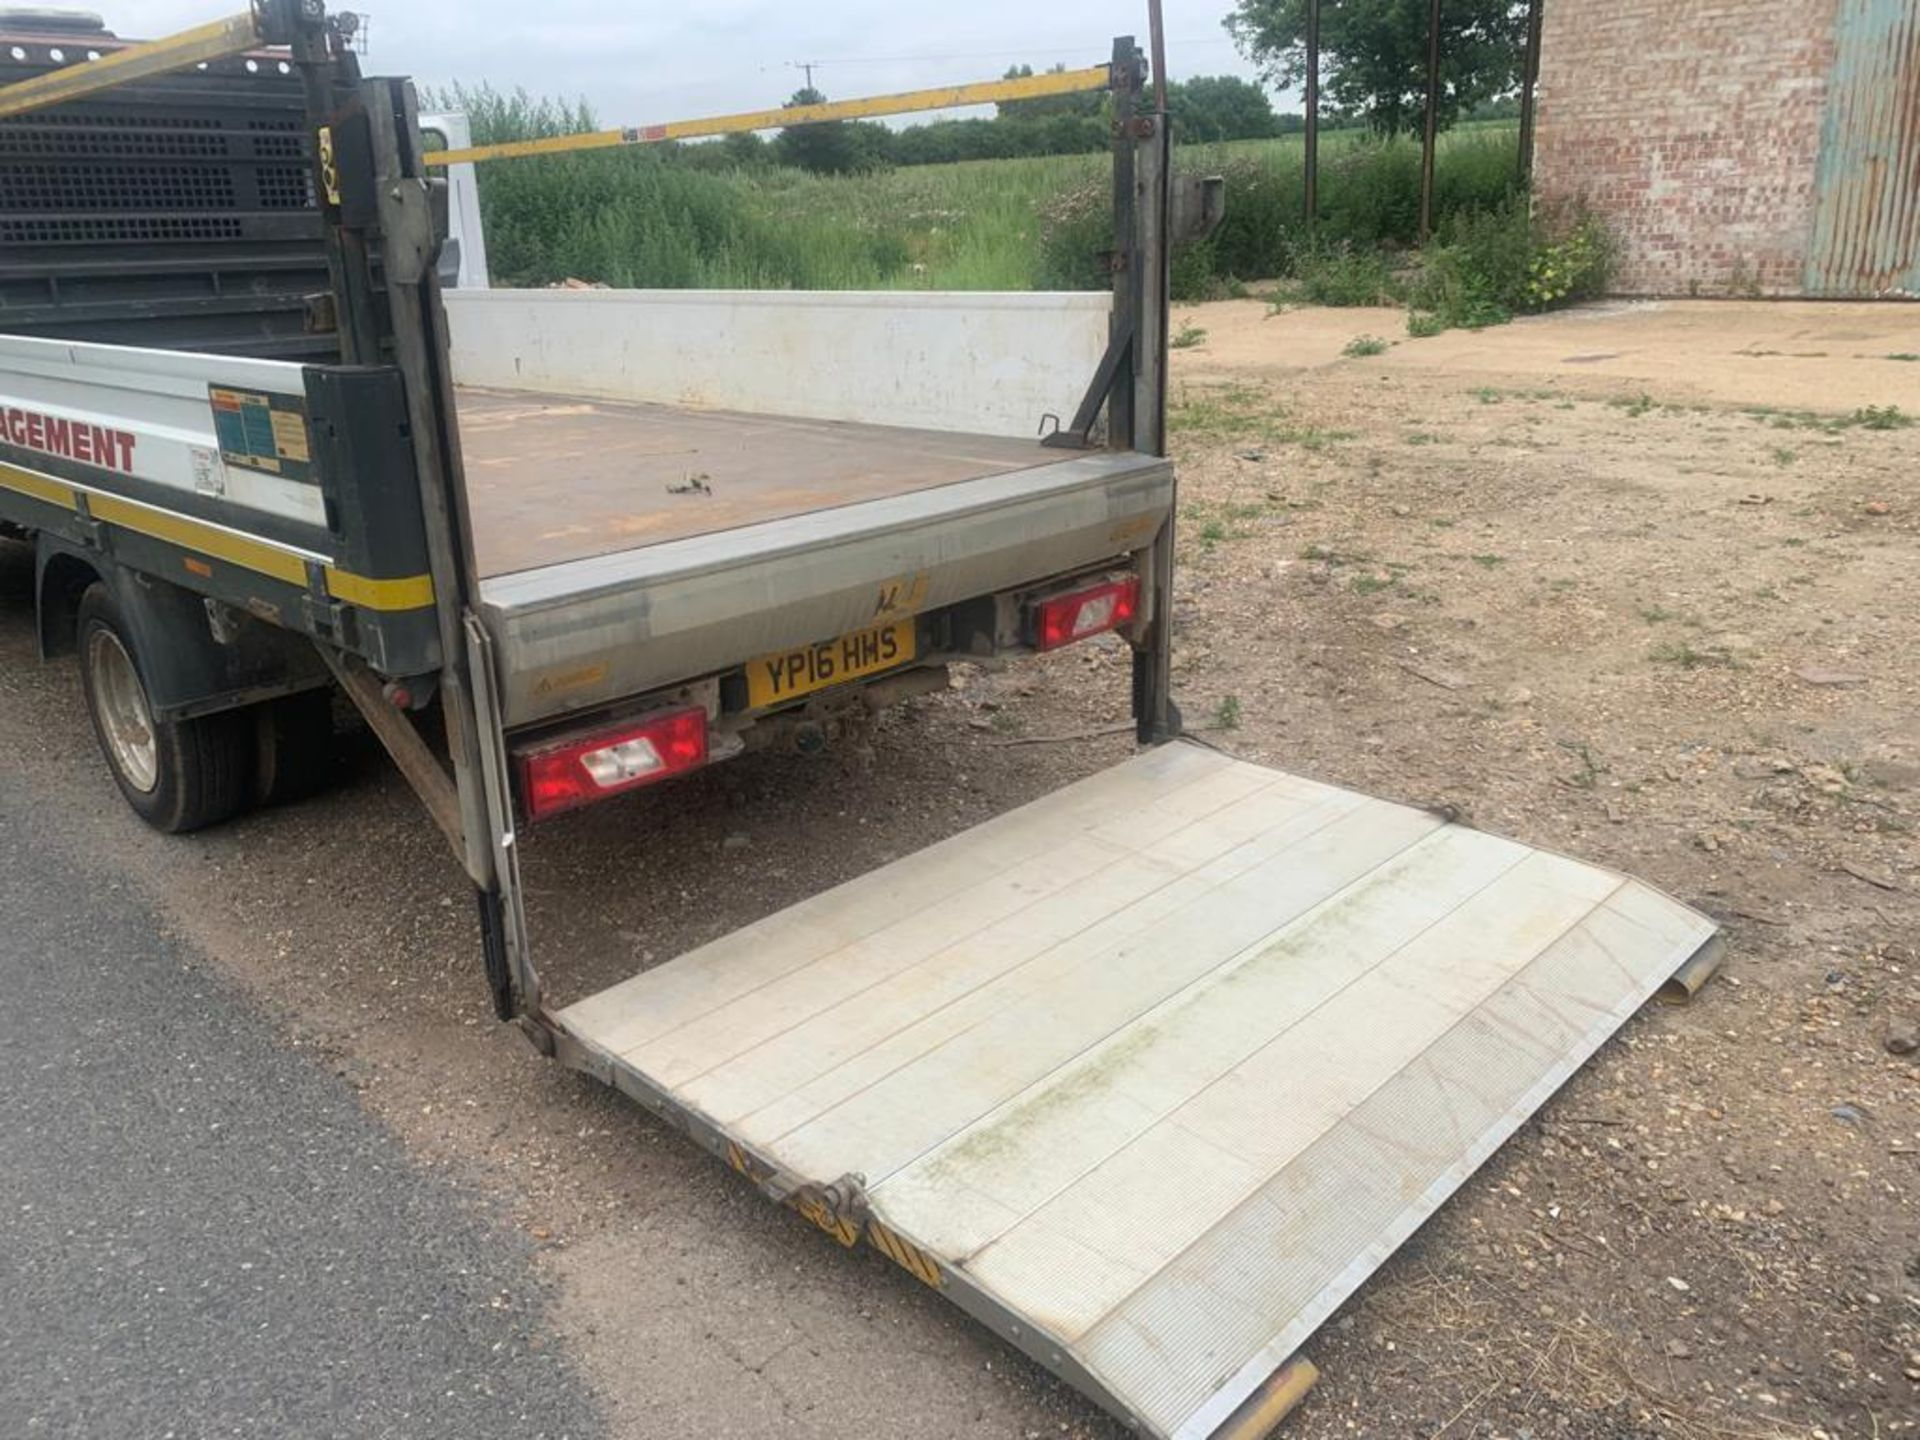 2016 FORD TRANSIT 350 DROPSIDE TAIL LIFT ALUMINUM BODY - Image 10 of 20